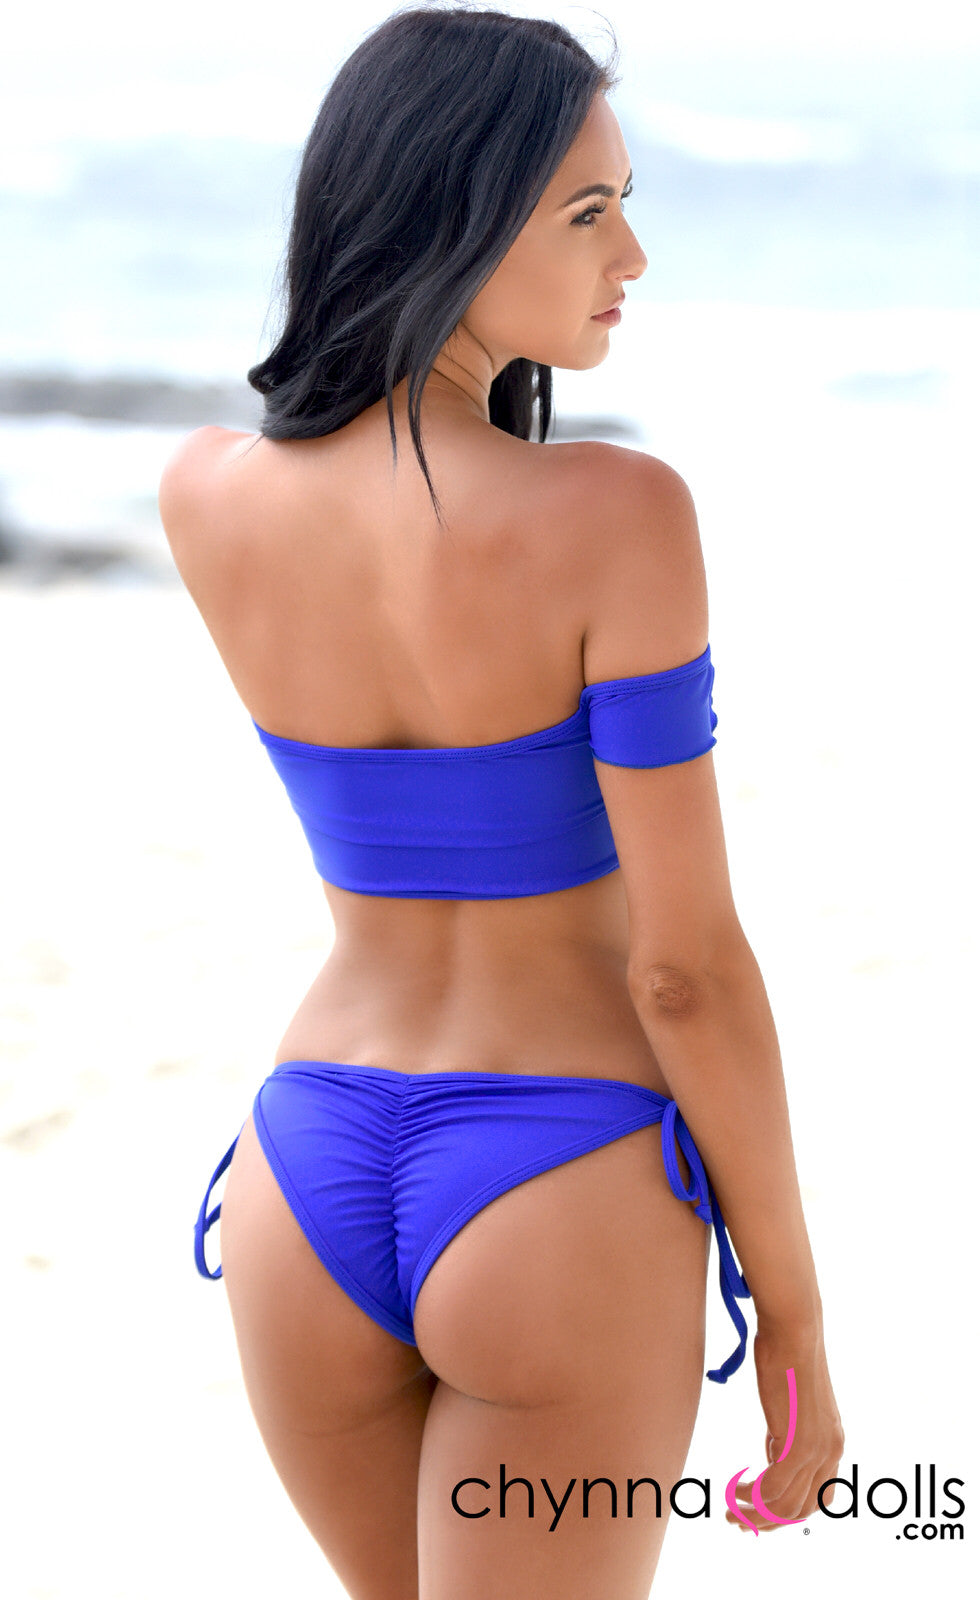 Savannah: Off the Shoulder Lace Up Top and String Bottom in Royal Blue - Chynna Dolls